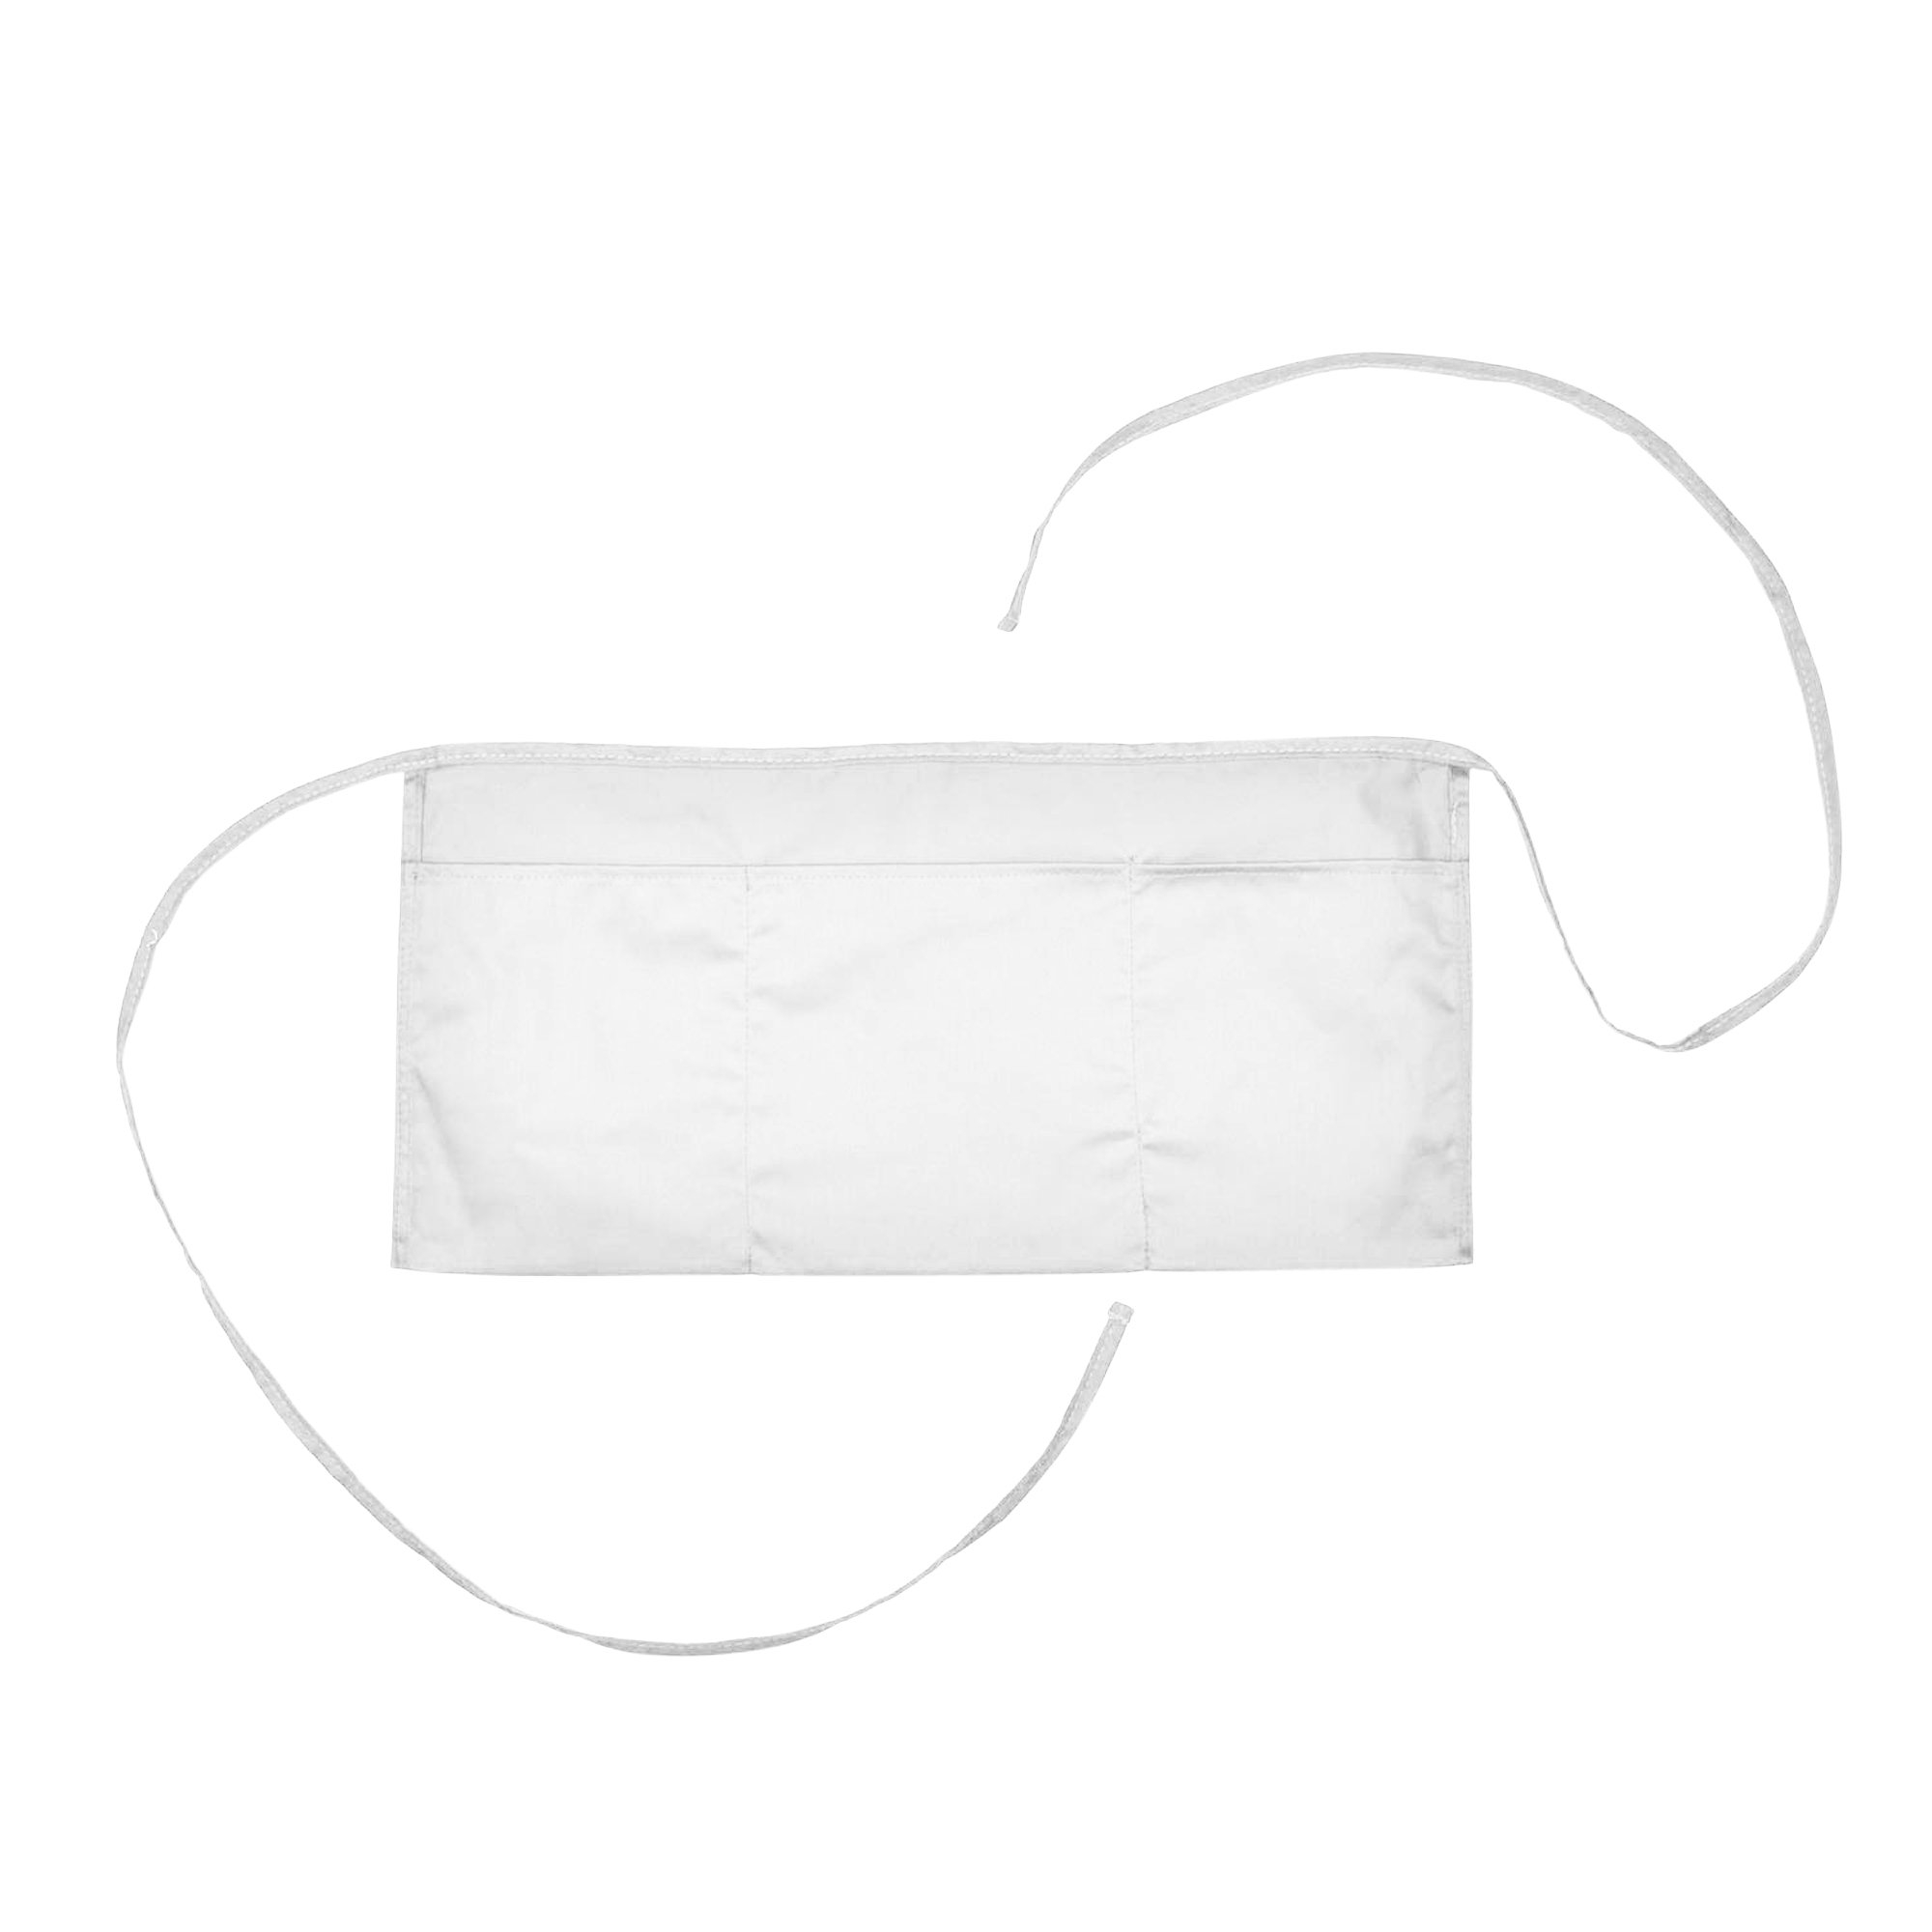 Waist Aprons Commercial Restaurant Home Bib Spun Poly Cotton Kitchen (3 Pockets) in White 100 Pack